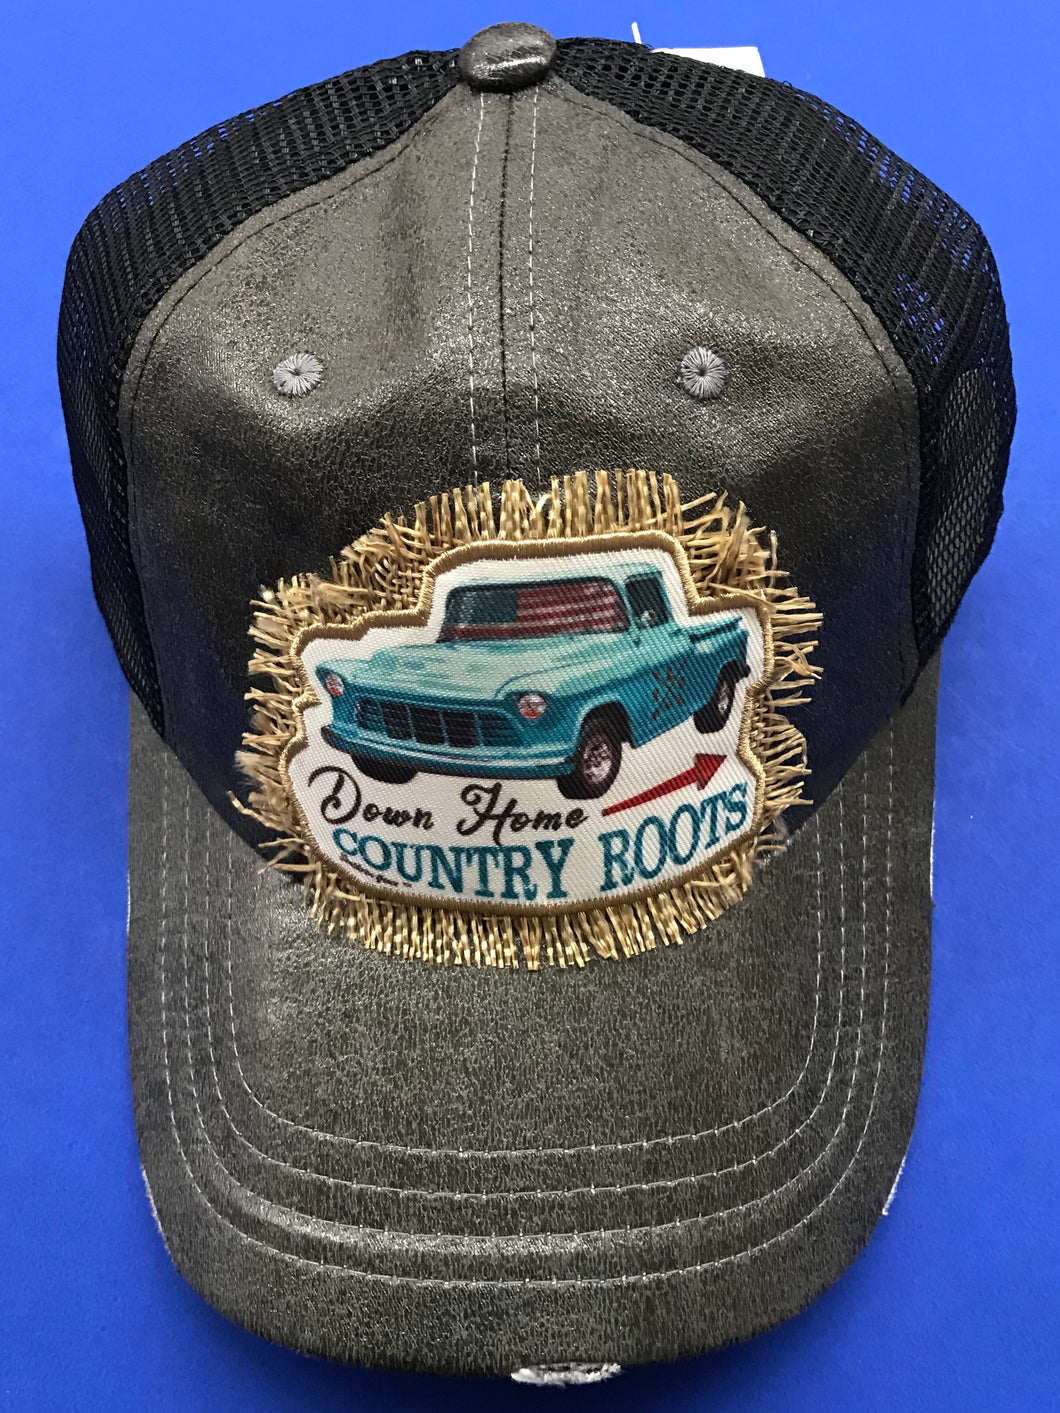 Down Home Country Roots Cap